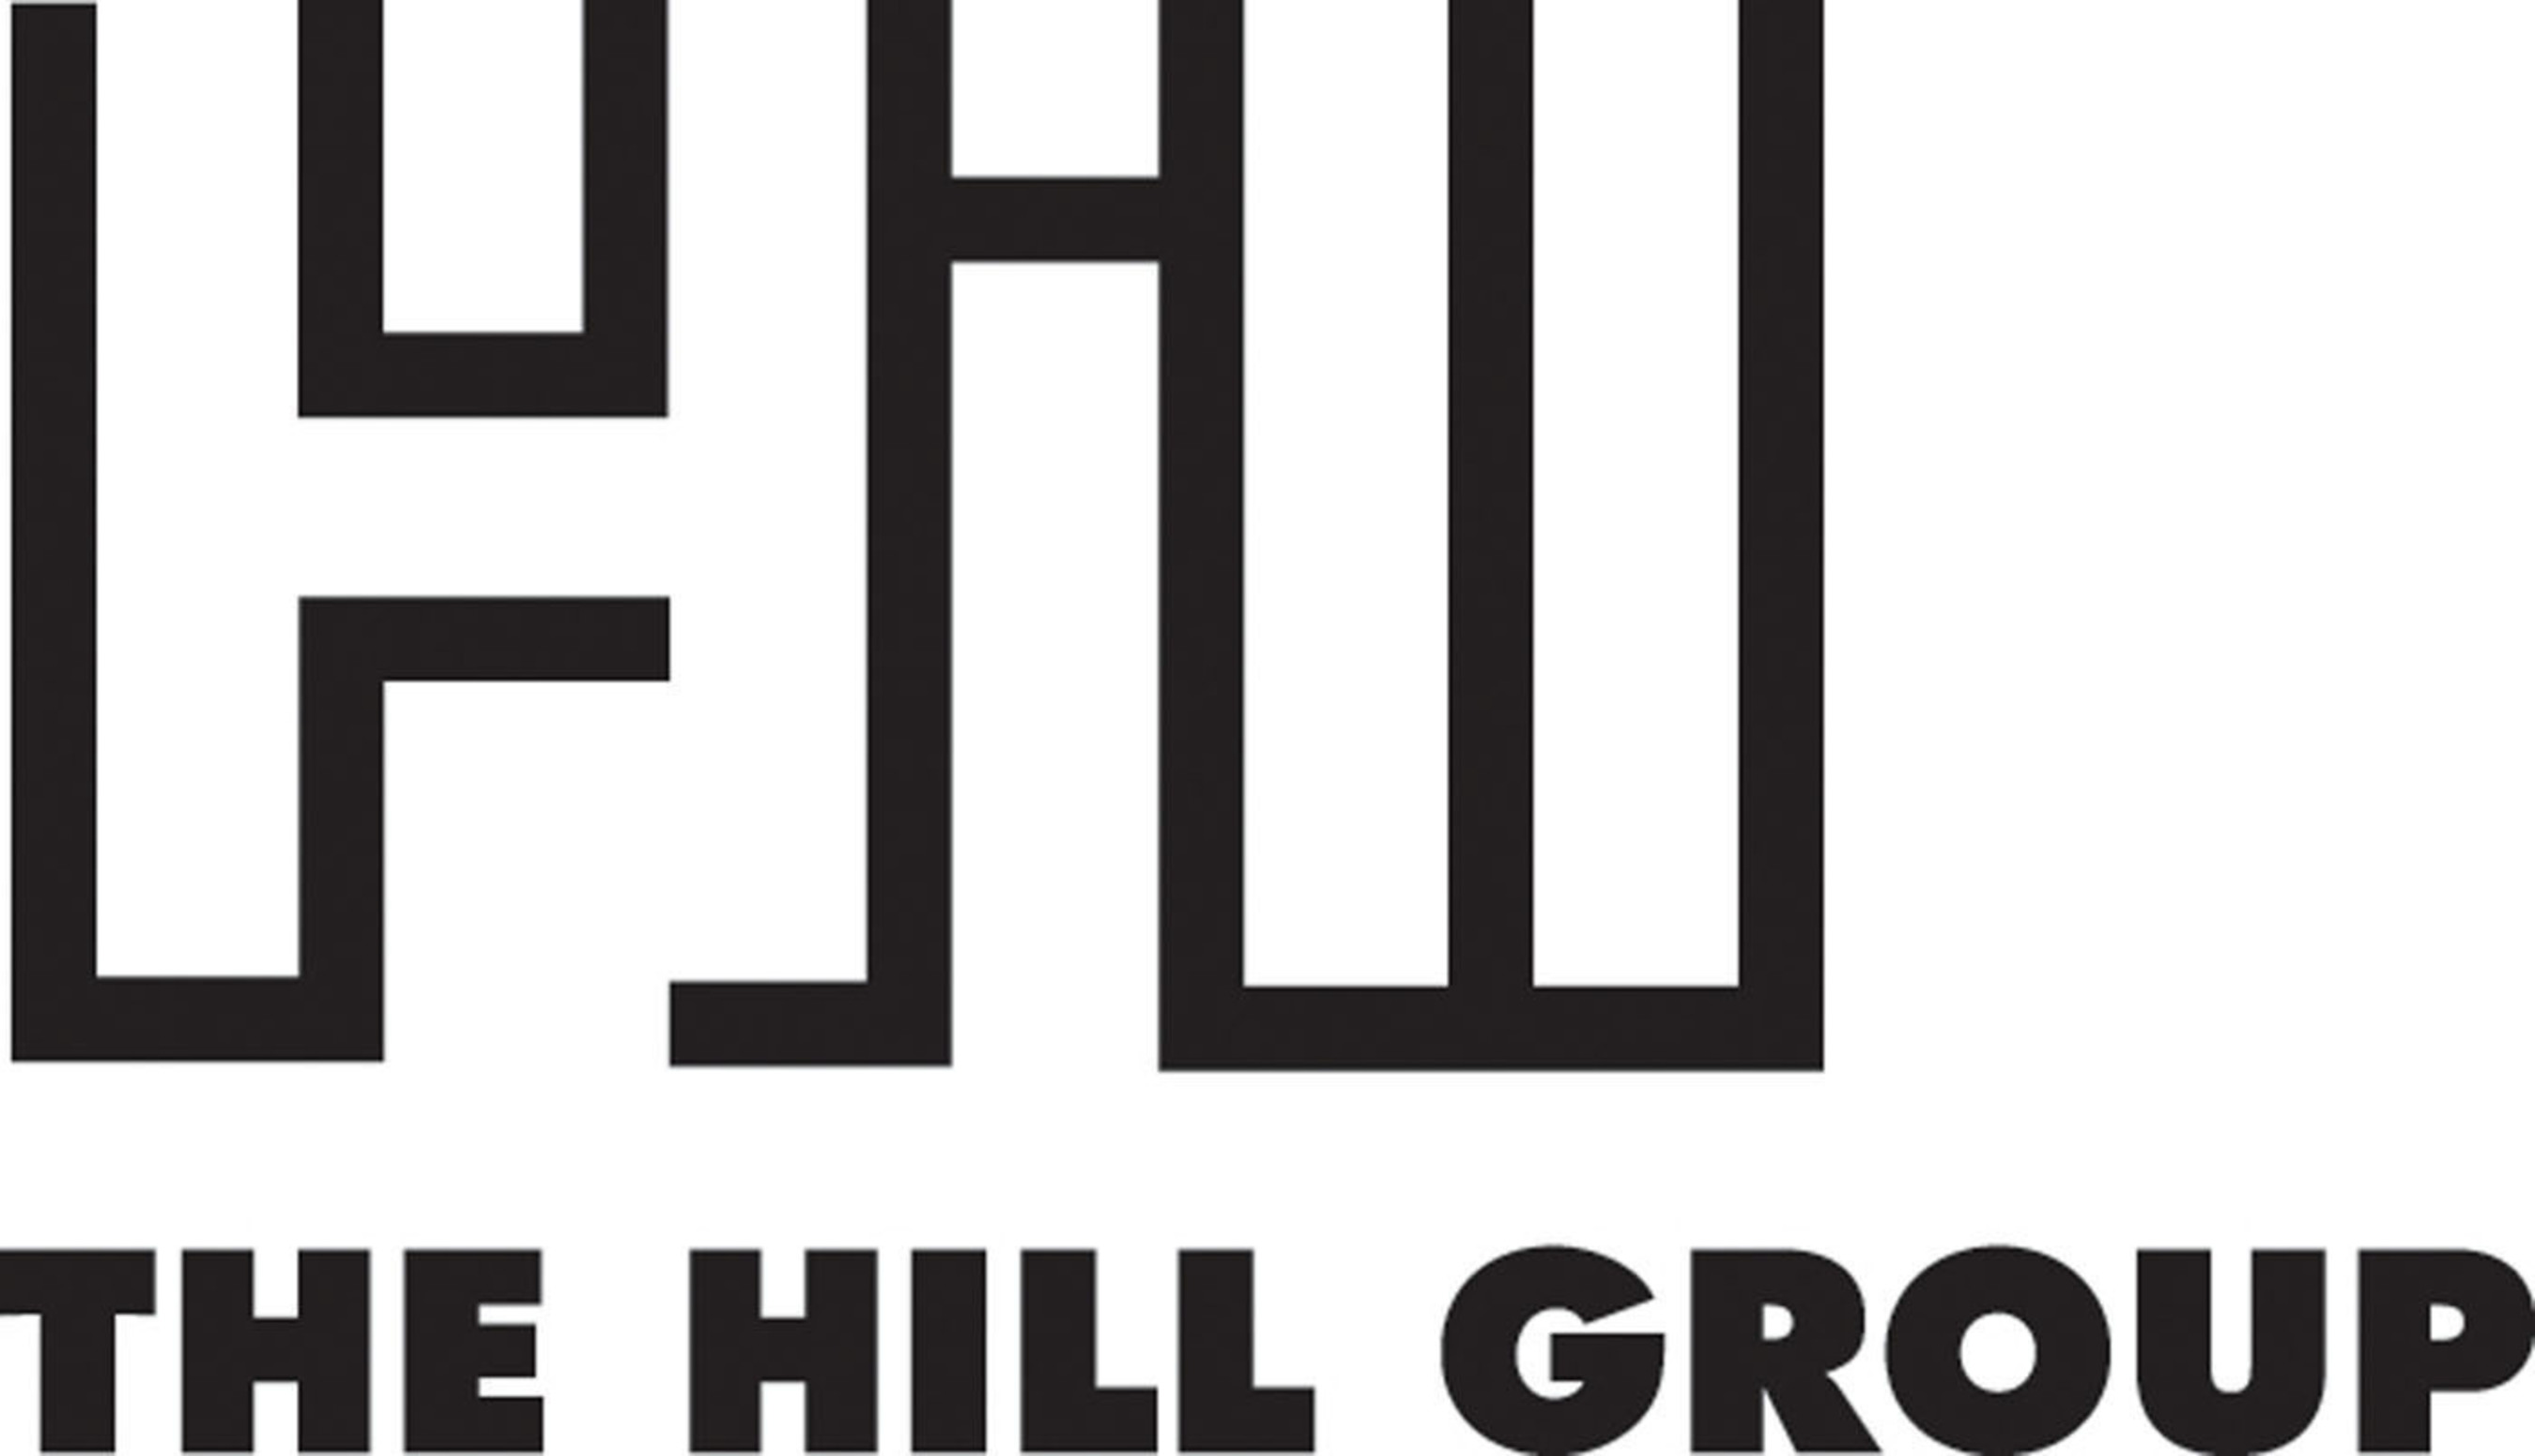 S&C Electric Company achieves LEEDv4 Silver Rating for New Power Systems Solutions Office Building through partnership with The Hill Group